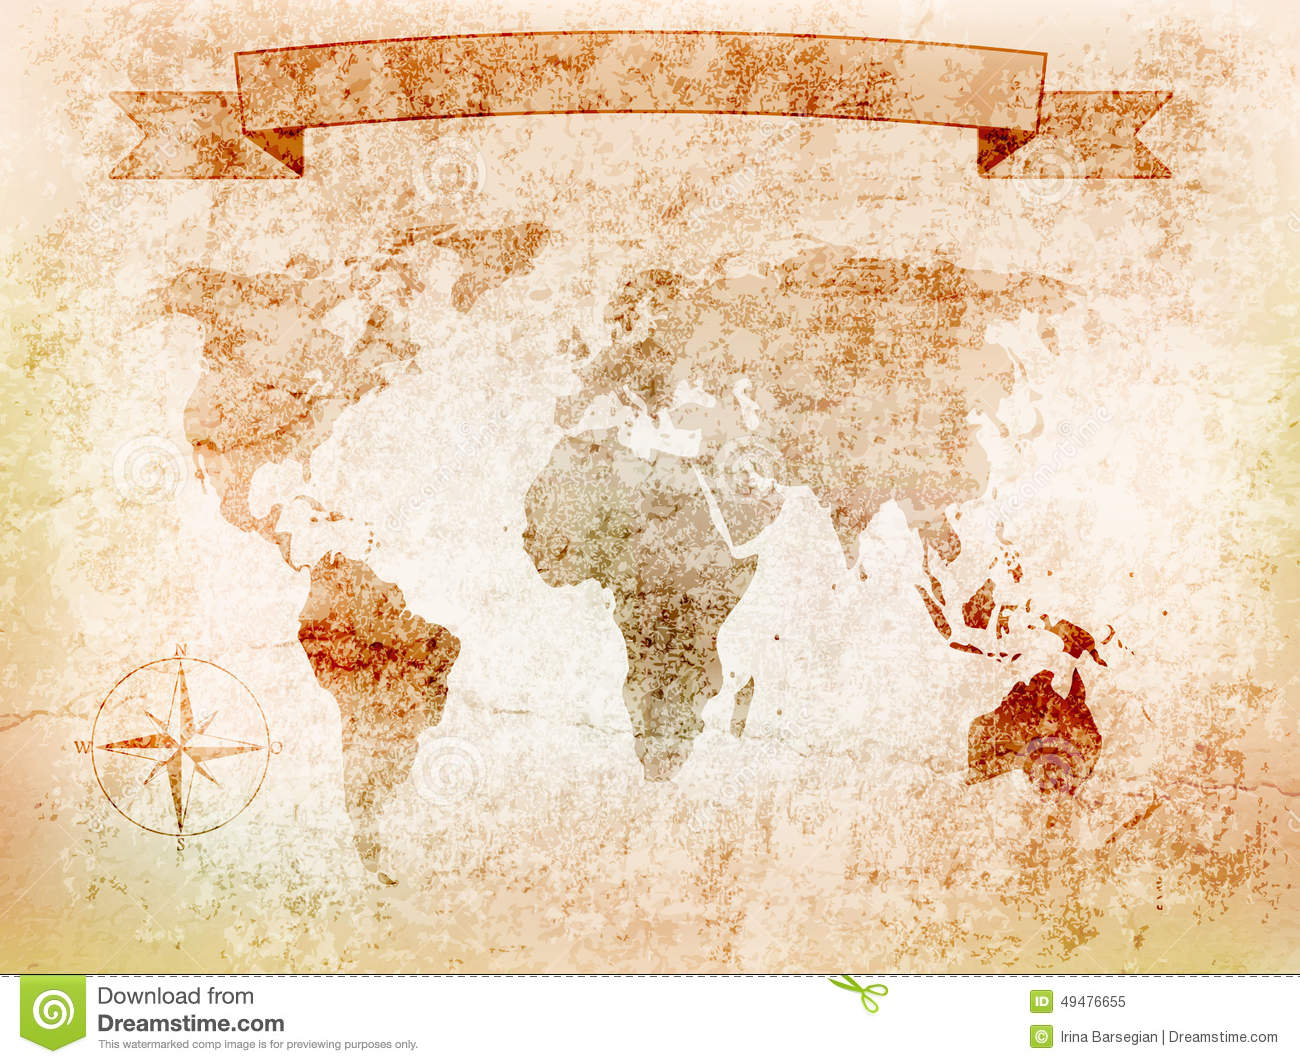 Background world map on old wall with crack windrose banner royalty free vector download background world map on old wall with crack windrose banner illustration stock gumiabroncs Gallery